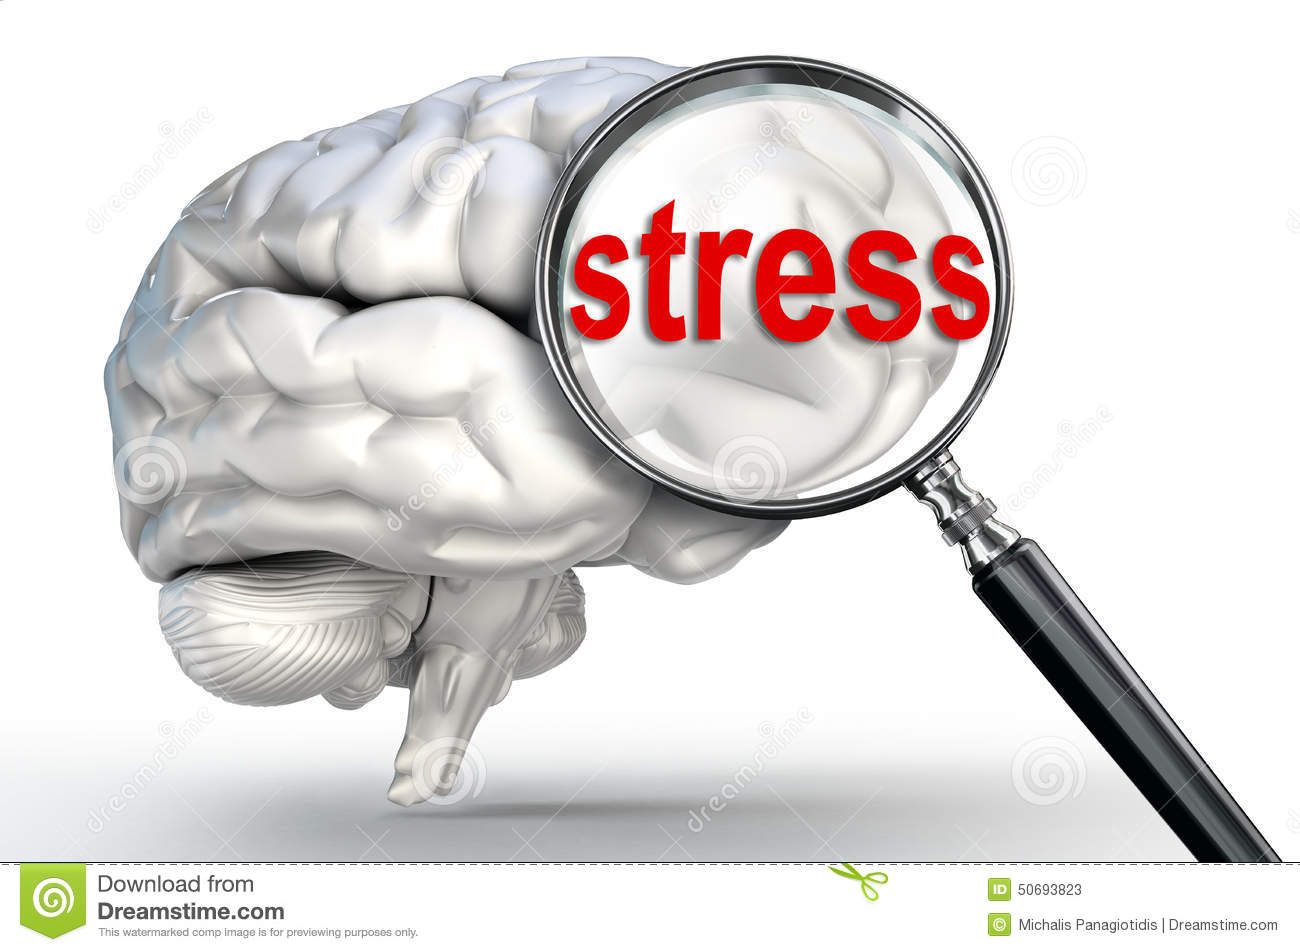 Stress word on magnifying glass and human brain stock illustration download stress word on magnifying glass and human brain stock illustration illustration of depressed ccuart Images